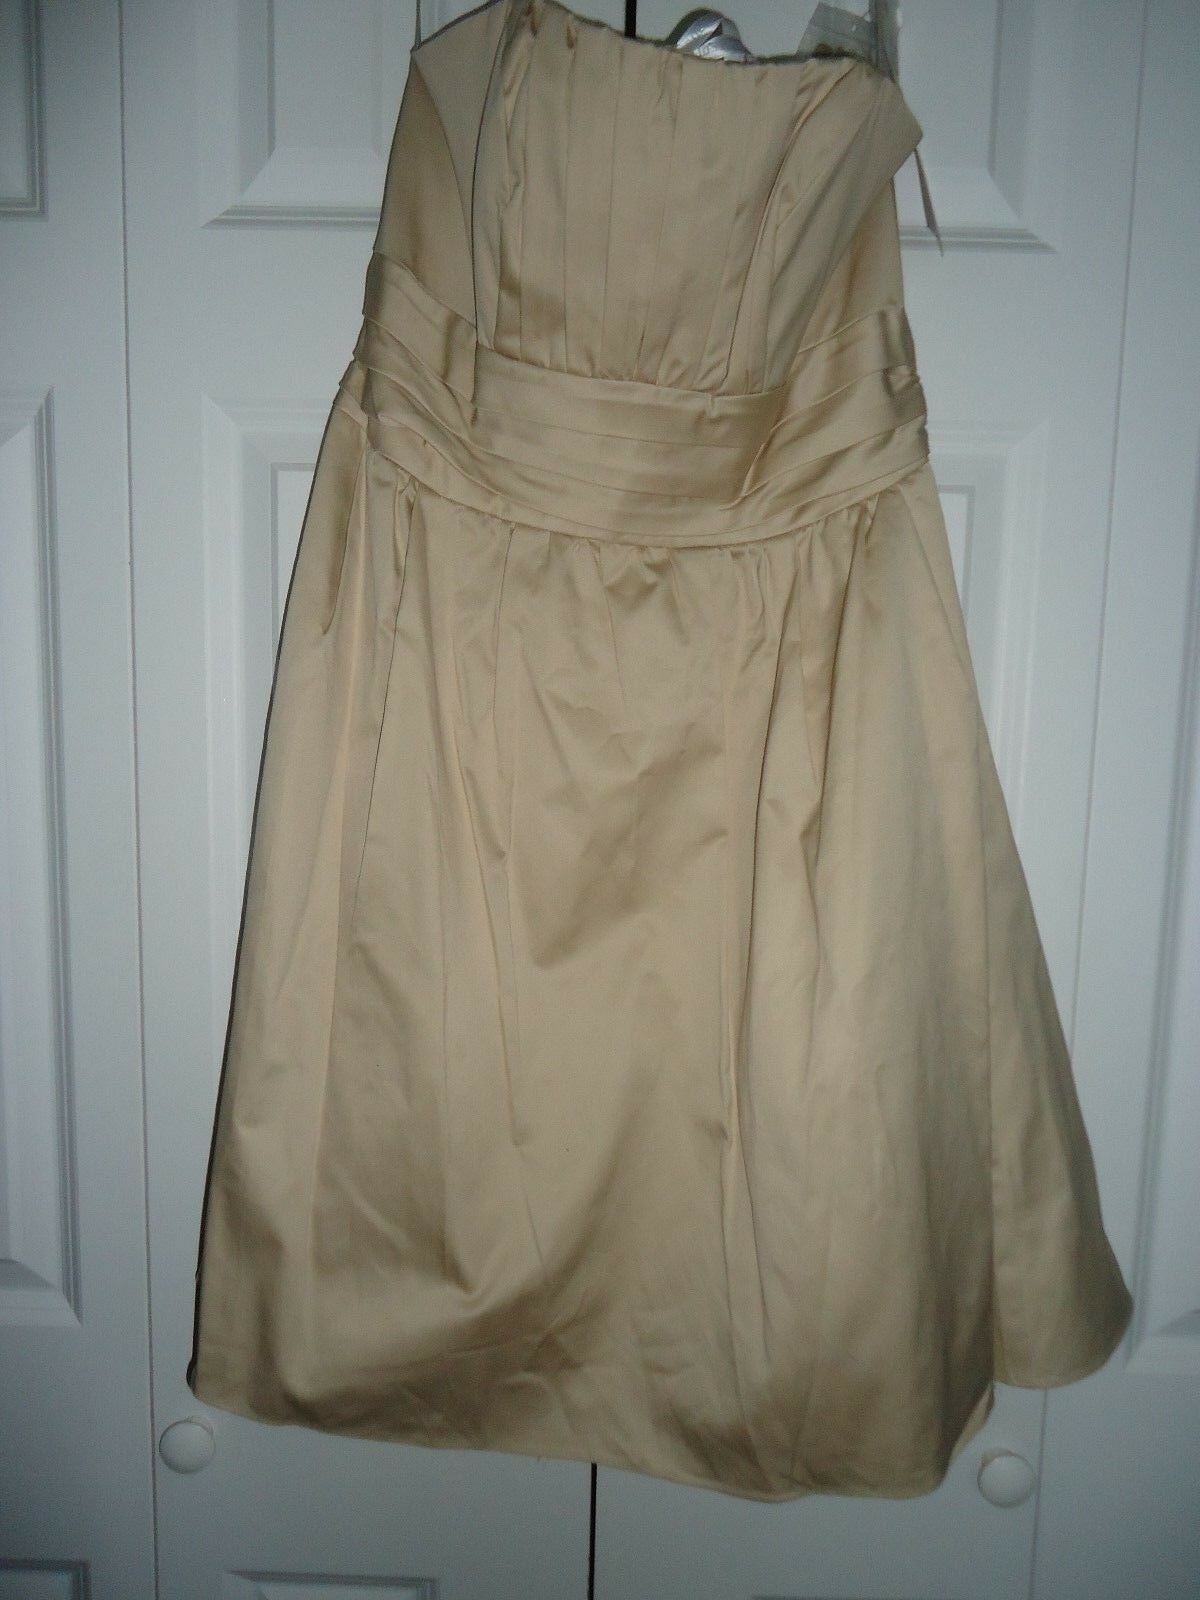 NEW Woman's size 10 David's Bridal Tan Strapless Ruched Knee Length Formal Dress